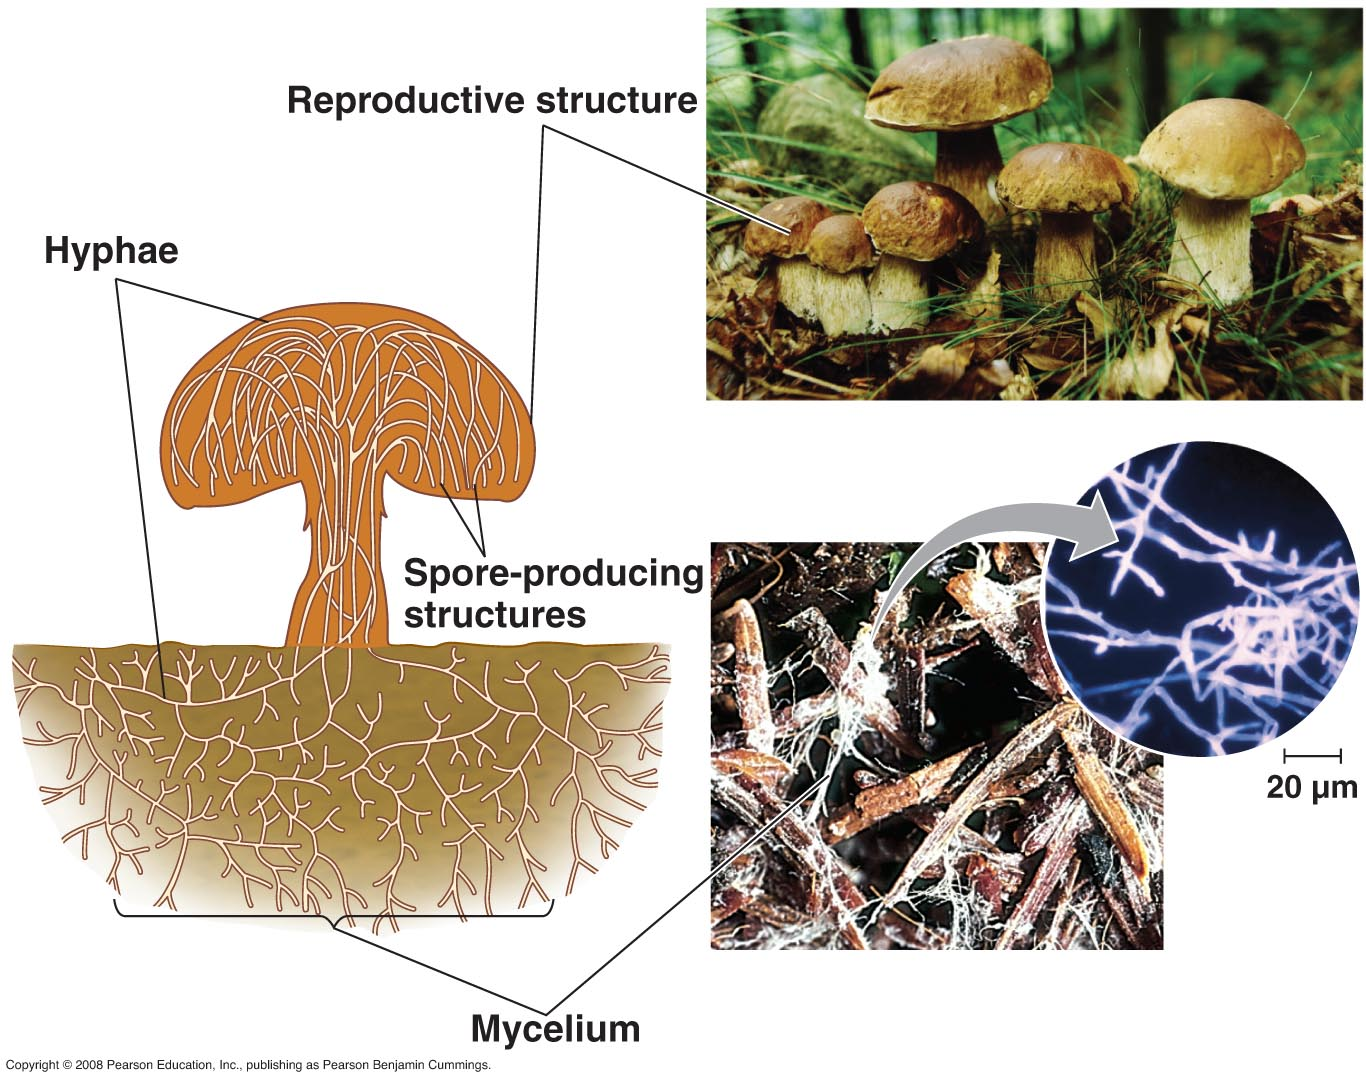 Fungi examples with pictures Cached